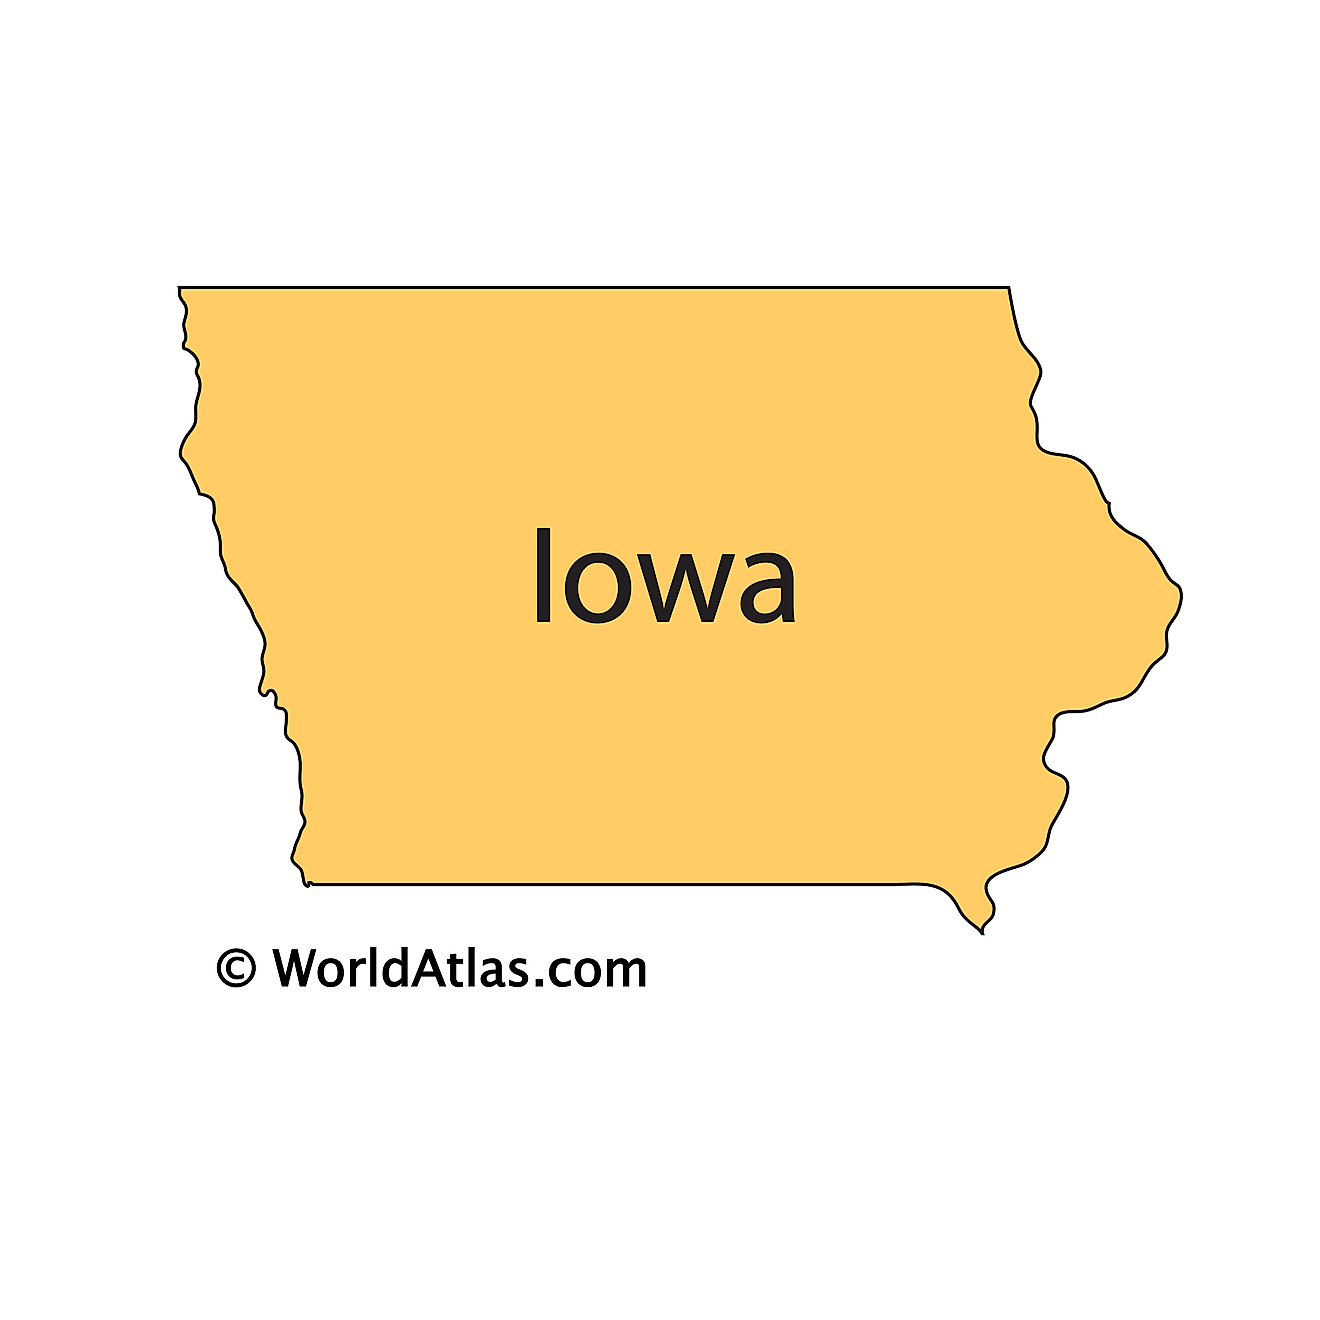 Outline Map of Iowa